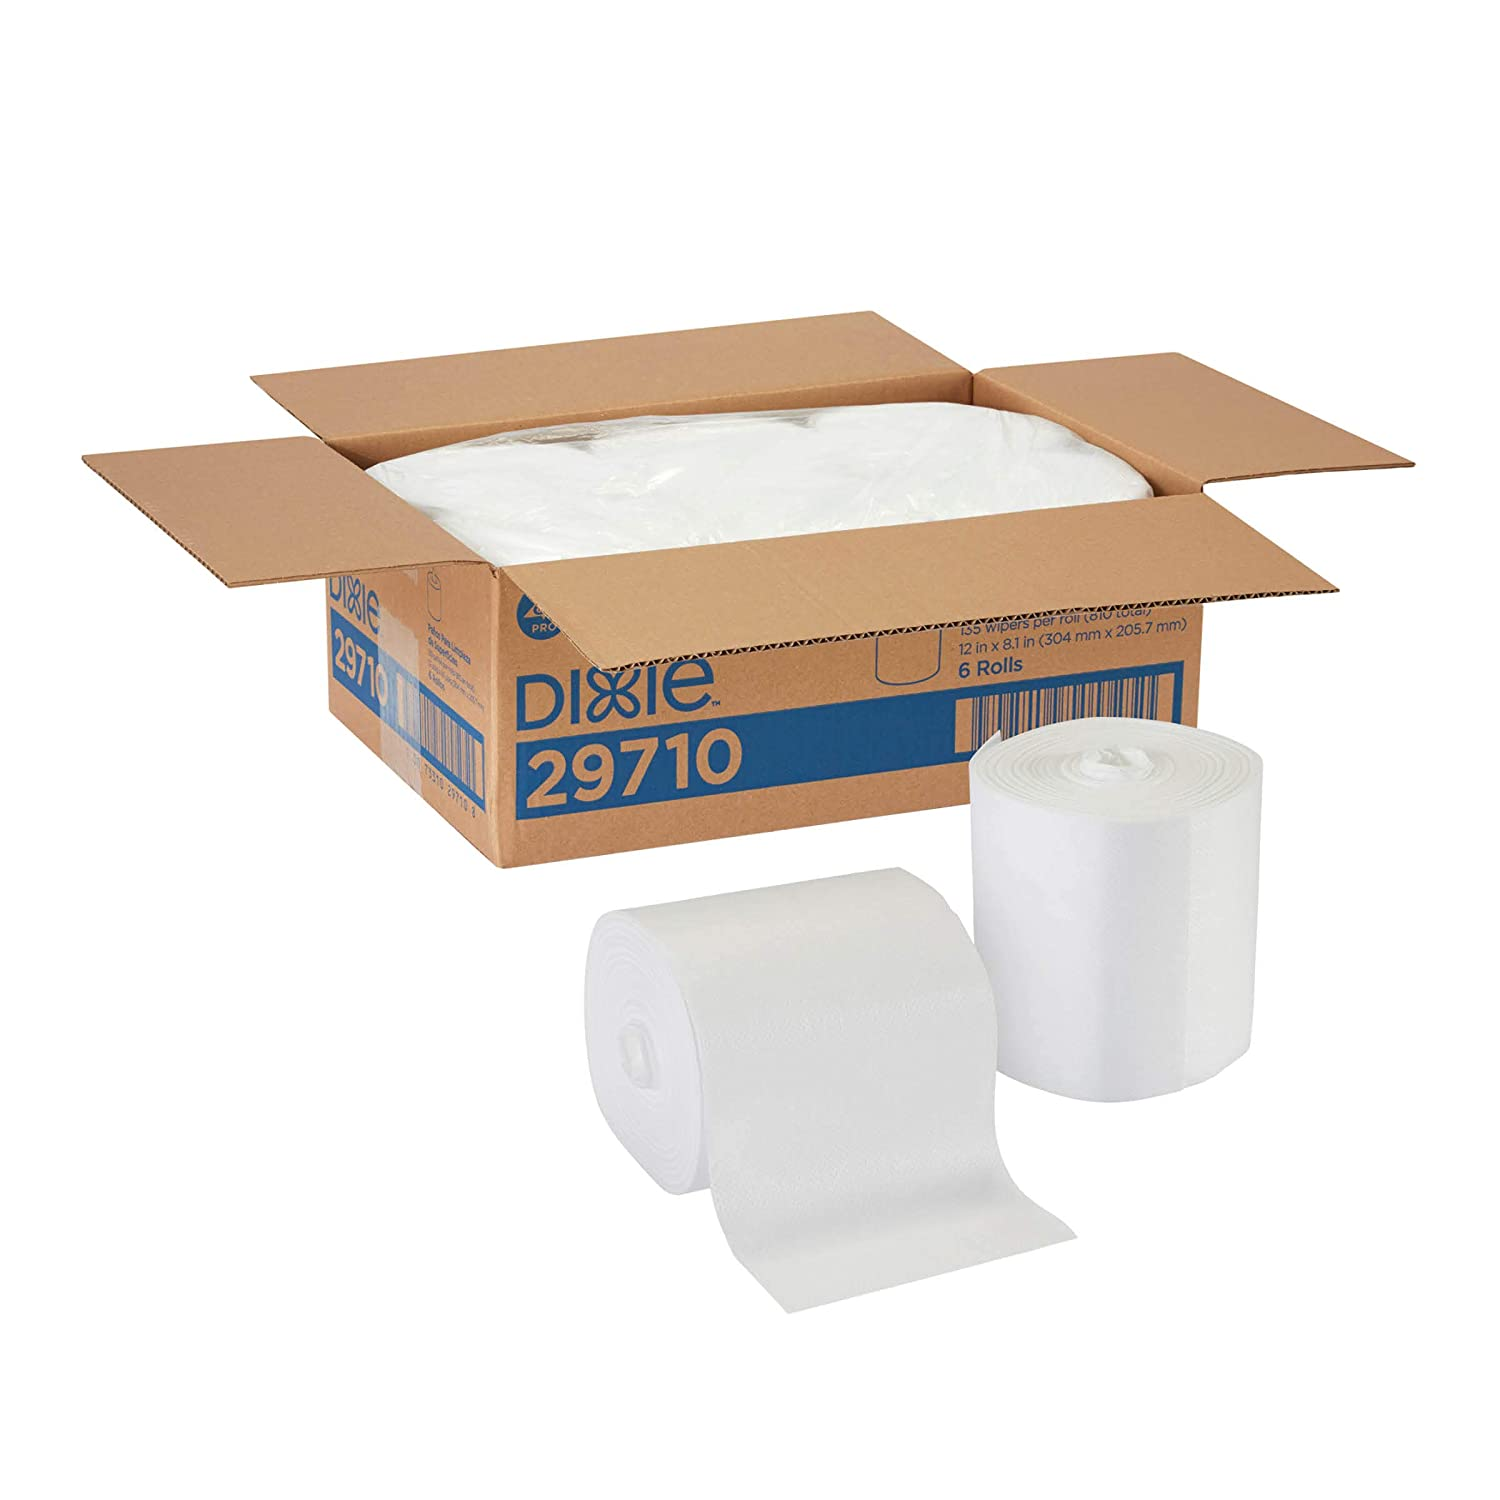 Georgia-Pacific Dixie Ultra Disposable Wiper Surface System for Food Service, 29710, 6 Rolls Per Case